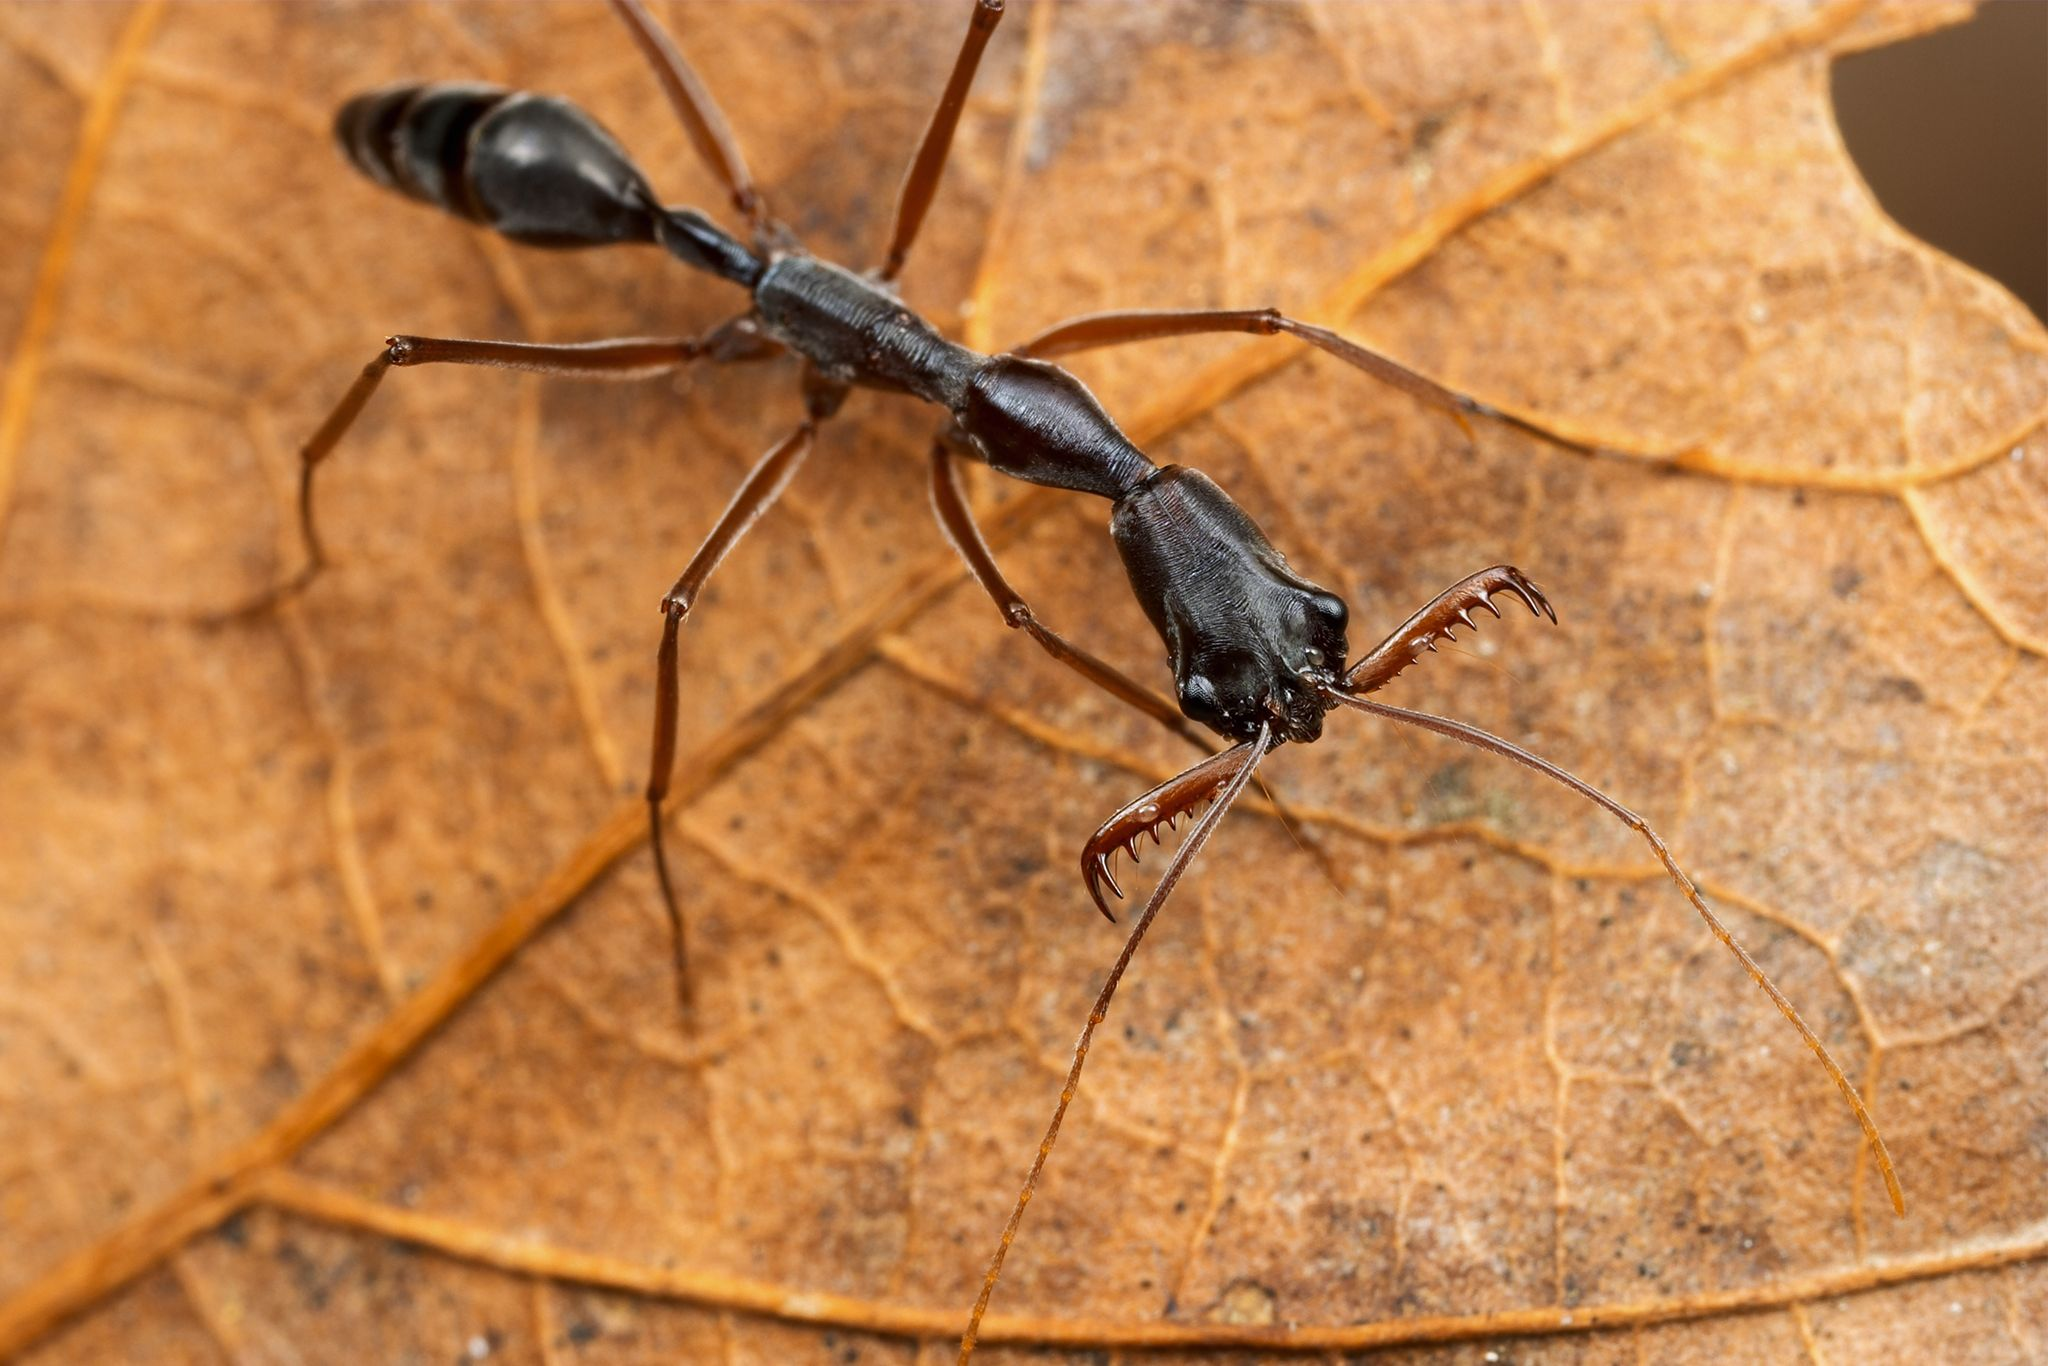 There's an invasive species conquering new territory in the southeastern United States. It has gnarly jaws, a formidable sting, and the ability to launch itself into the air like a bottle rocket. These insects are known as trap-jaw ants, and they could be heading to a backyard near you. Most trap-jaw ants belong to the genus Odontomachus, named for their mandibles, or mouthparts, which are capable of opening 180 degrees.